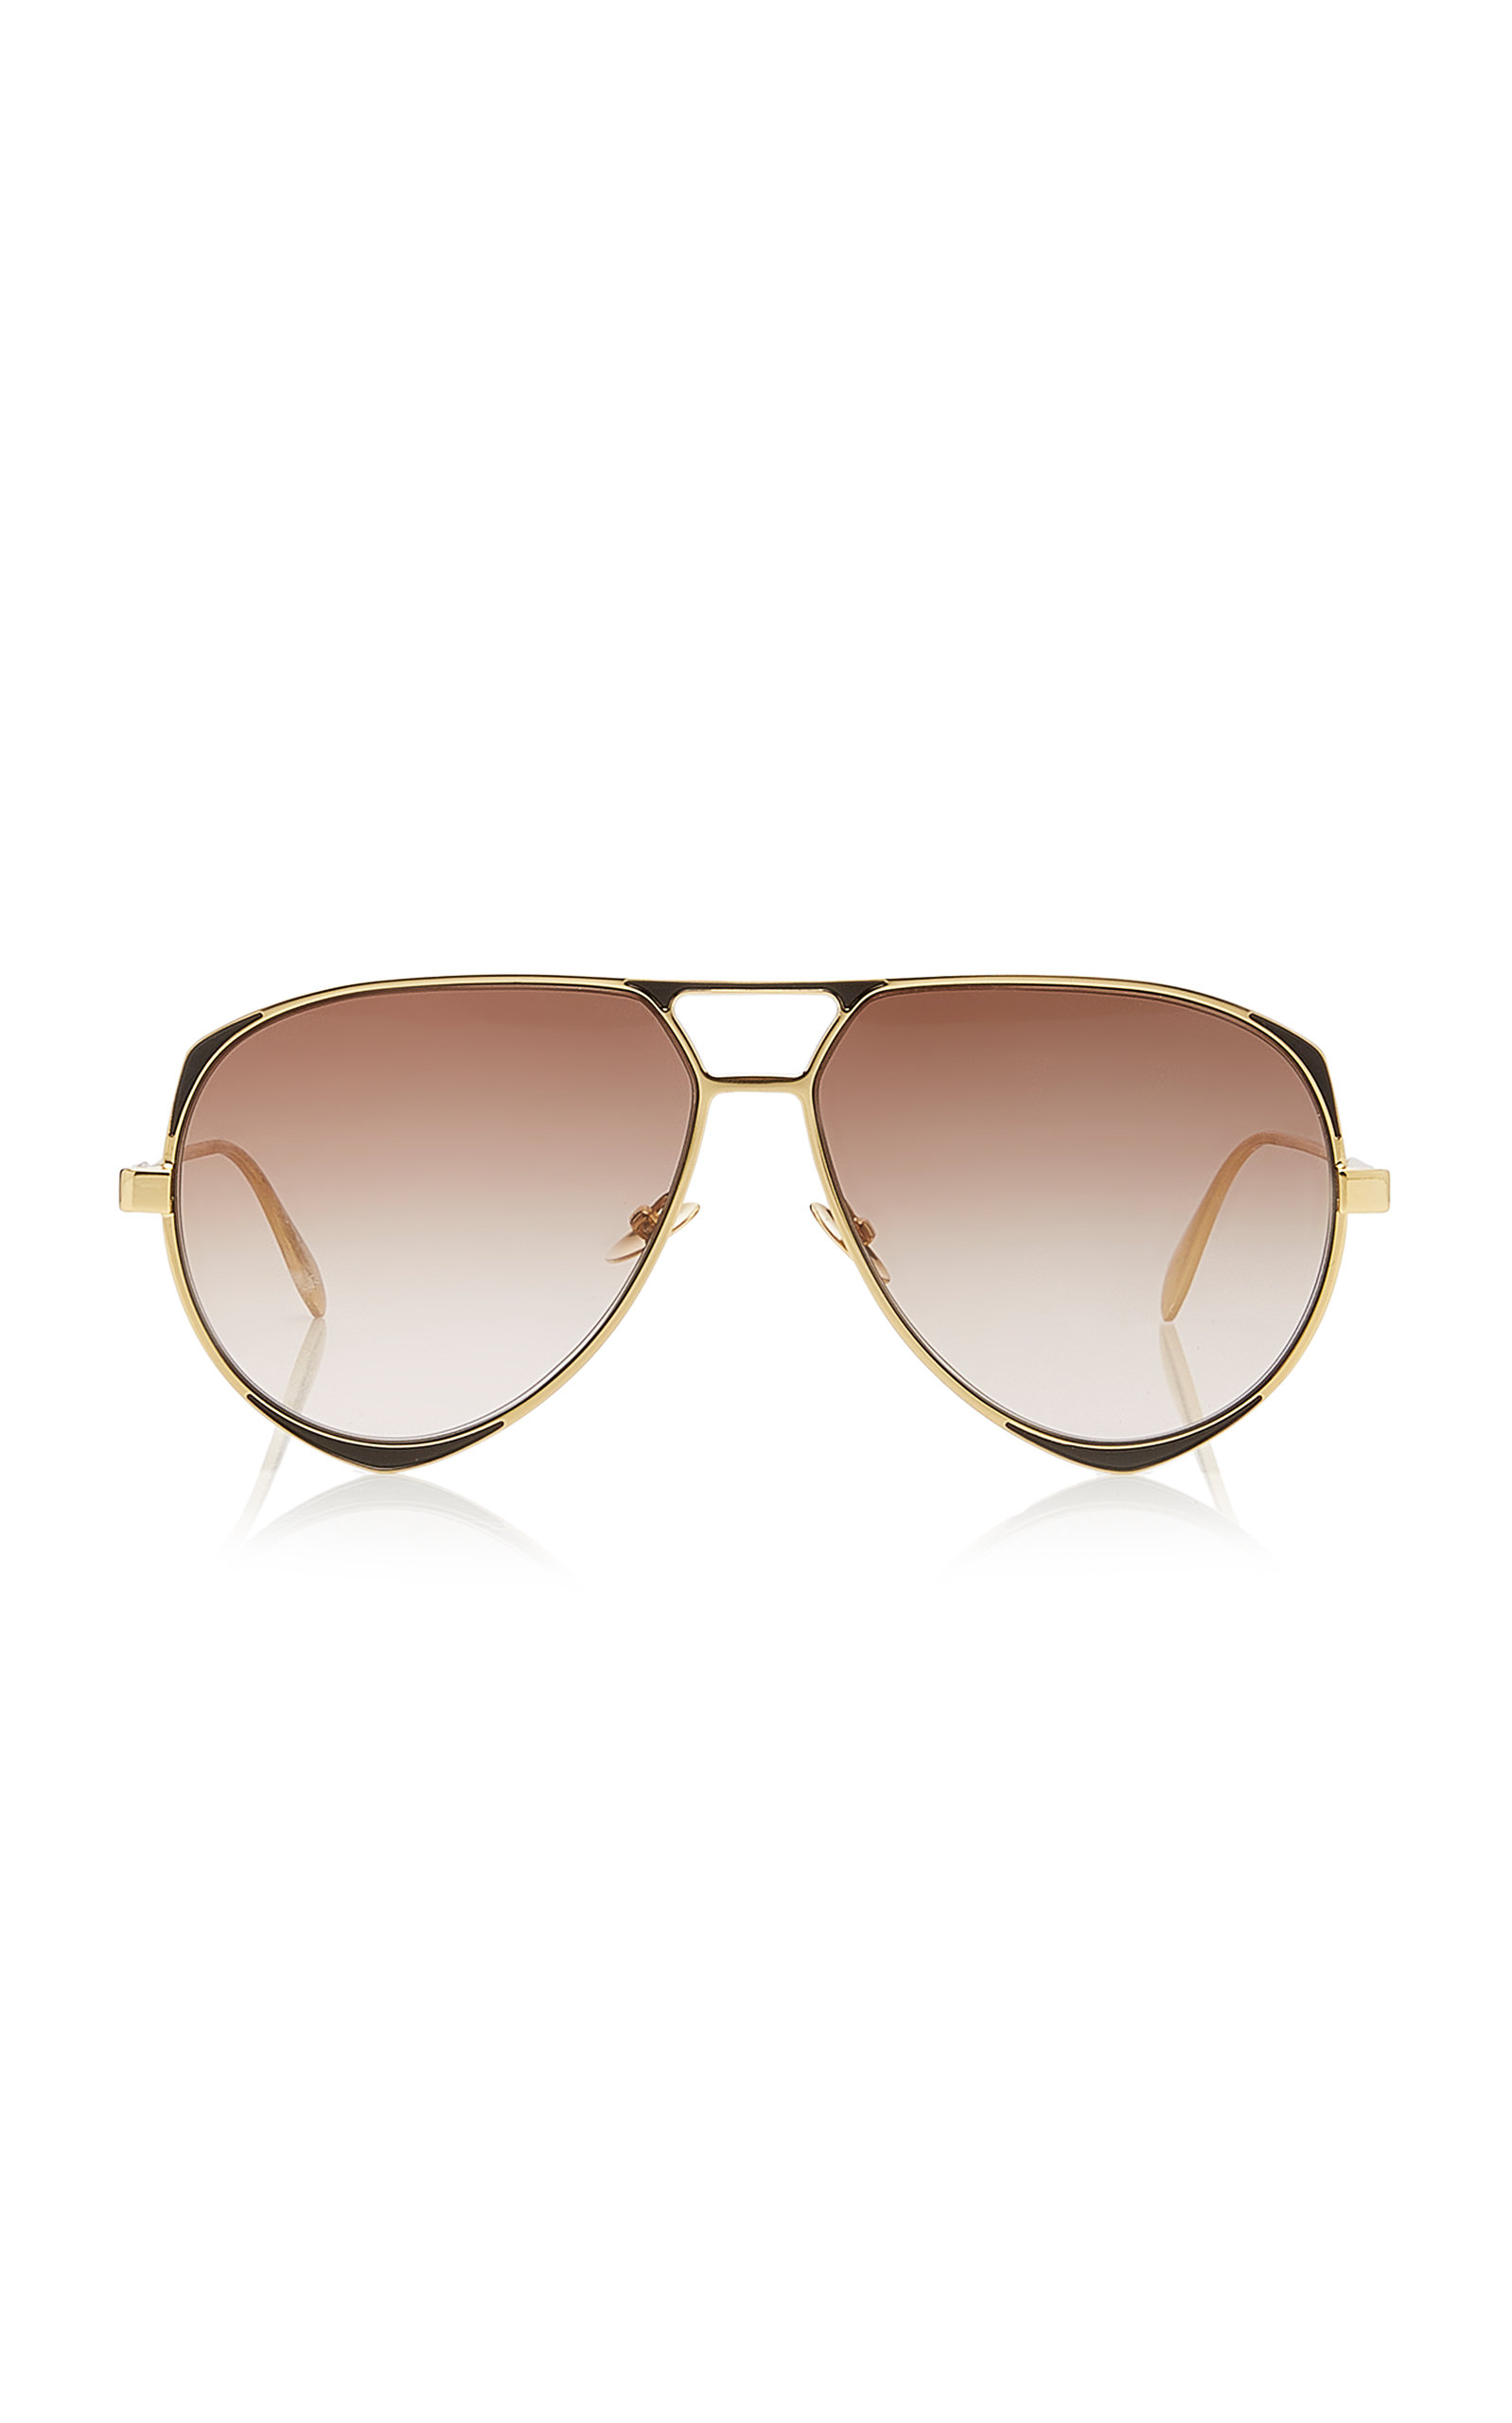 911ade0c8271a Aviator-Style Metal Sunglasses by Alexander McQueen Sunglasses ...